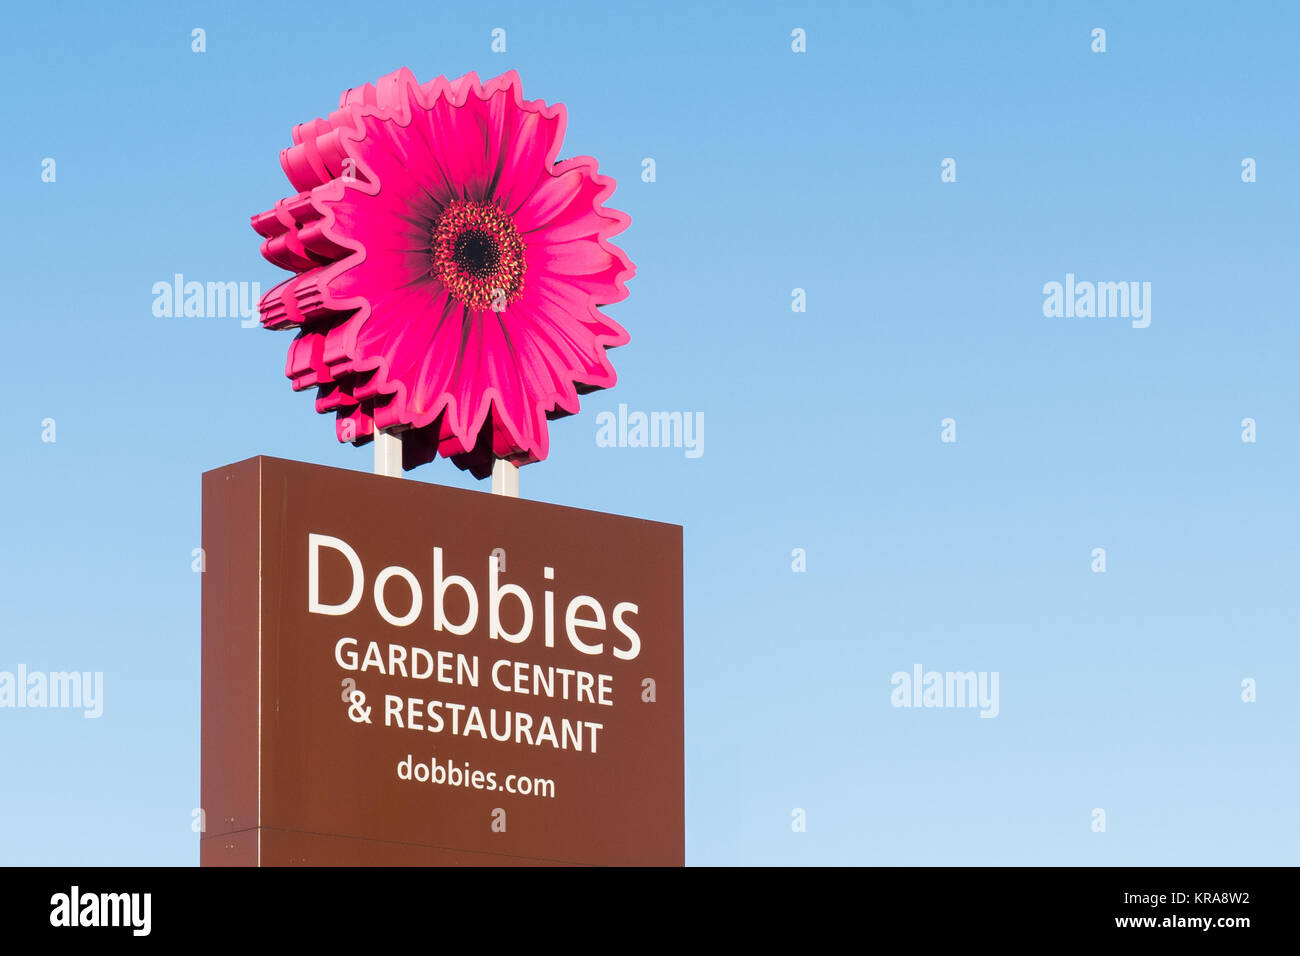 Dobbies Garden Centre and Restaurant sign and logo, Braehead, Glasgow, Scotland, UK - Stock Image